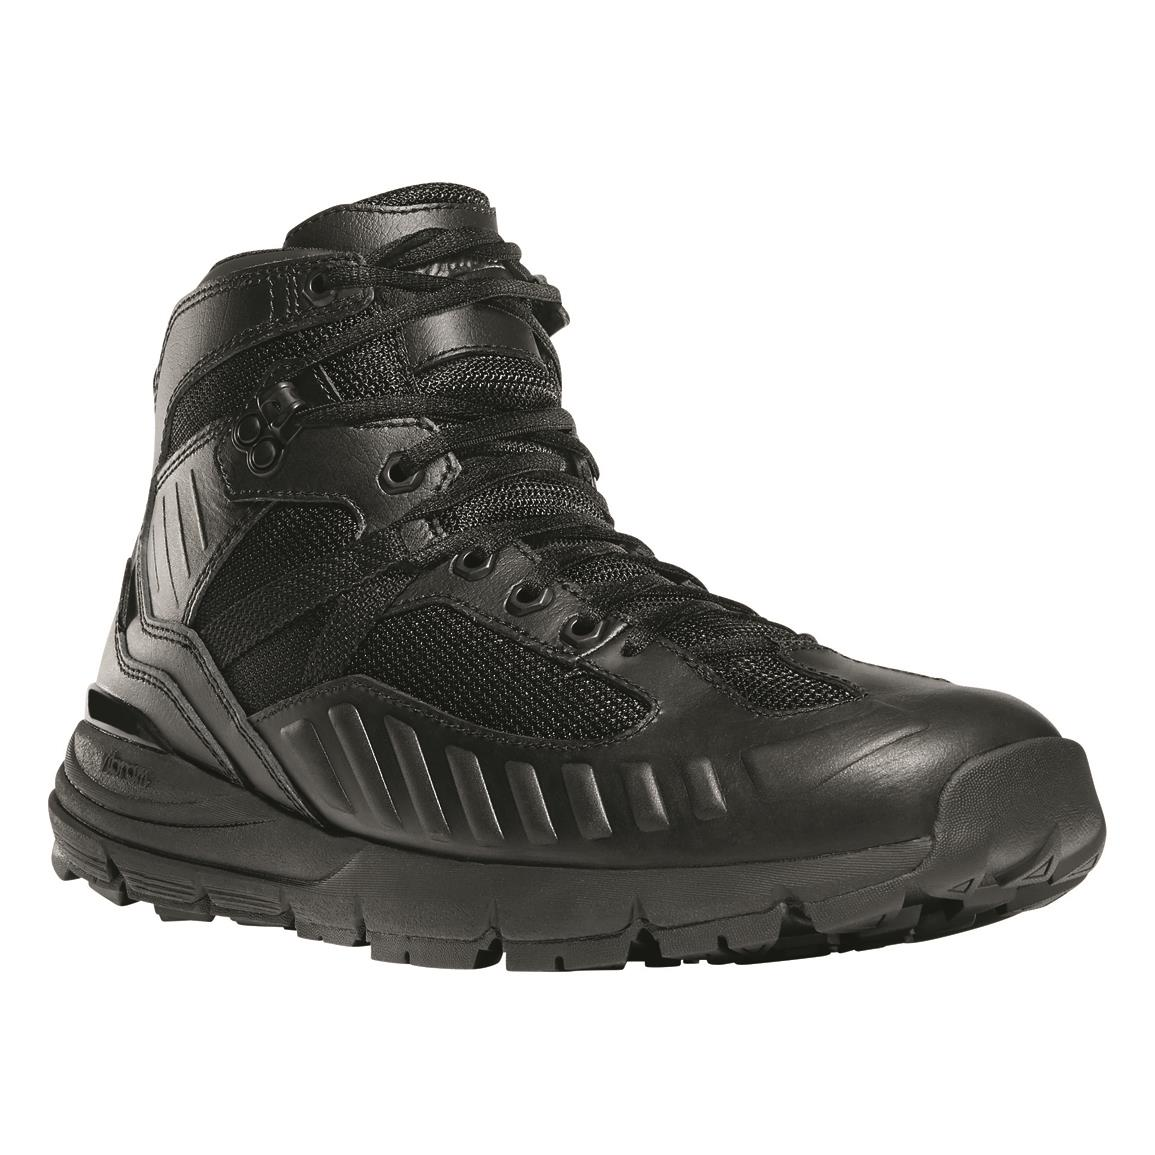 "Danner Men's FullBore 4.5"" Waterproof Duty Boots, Black"